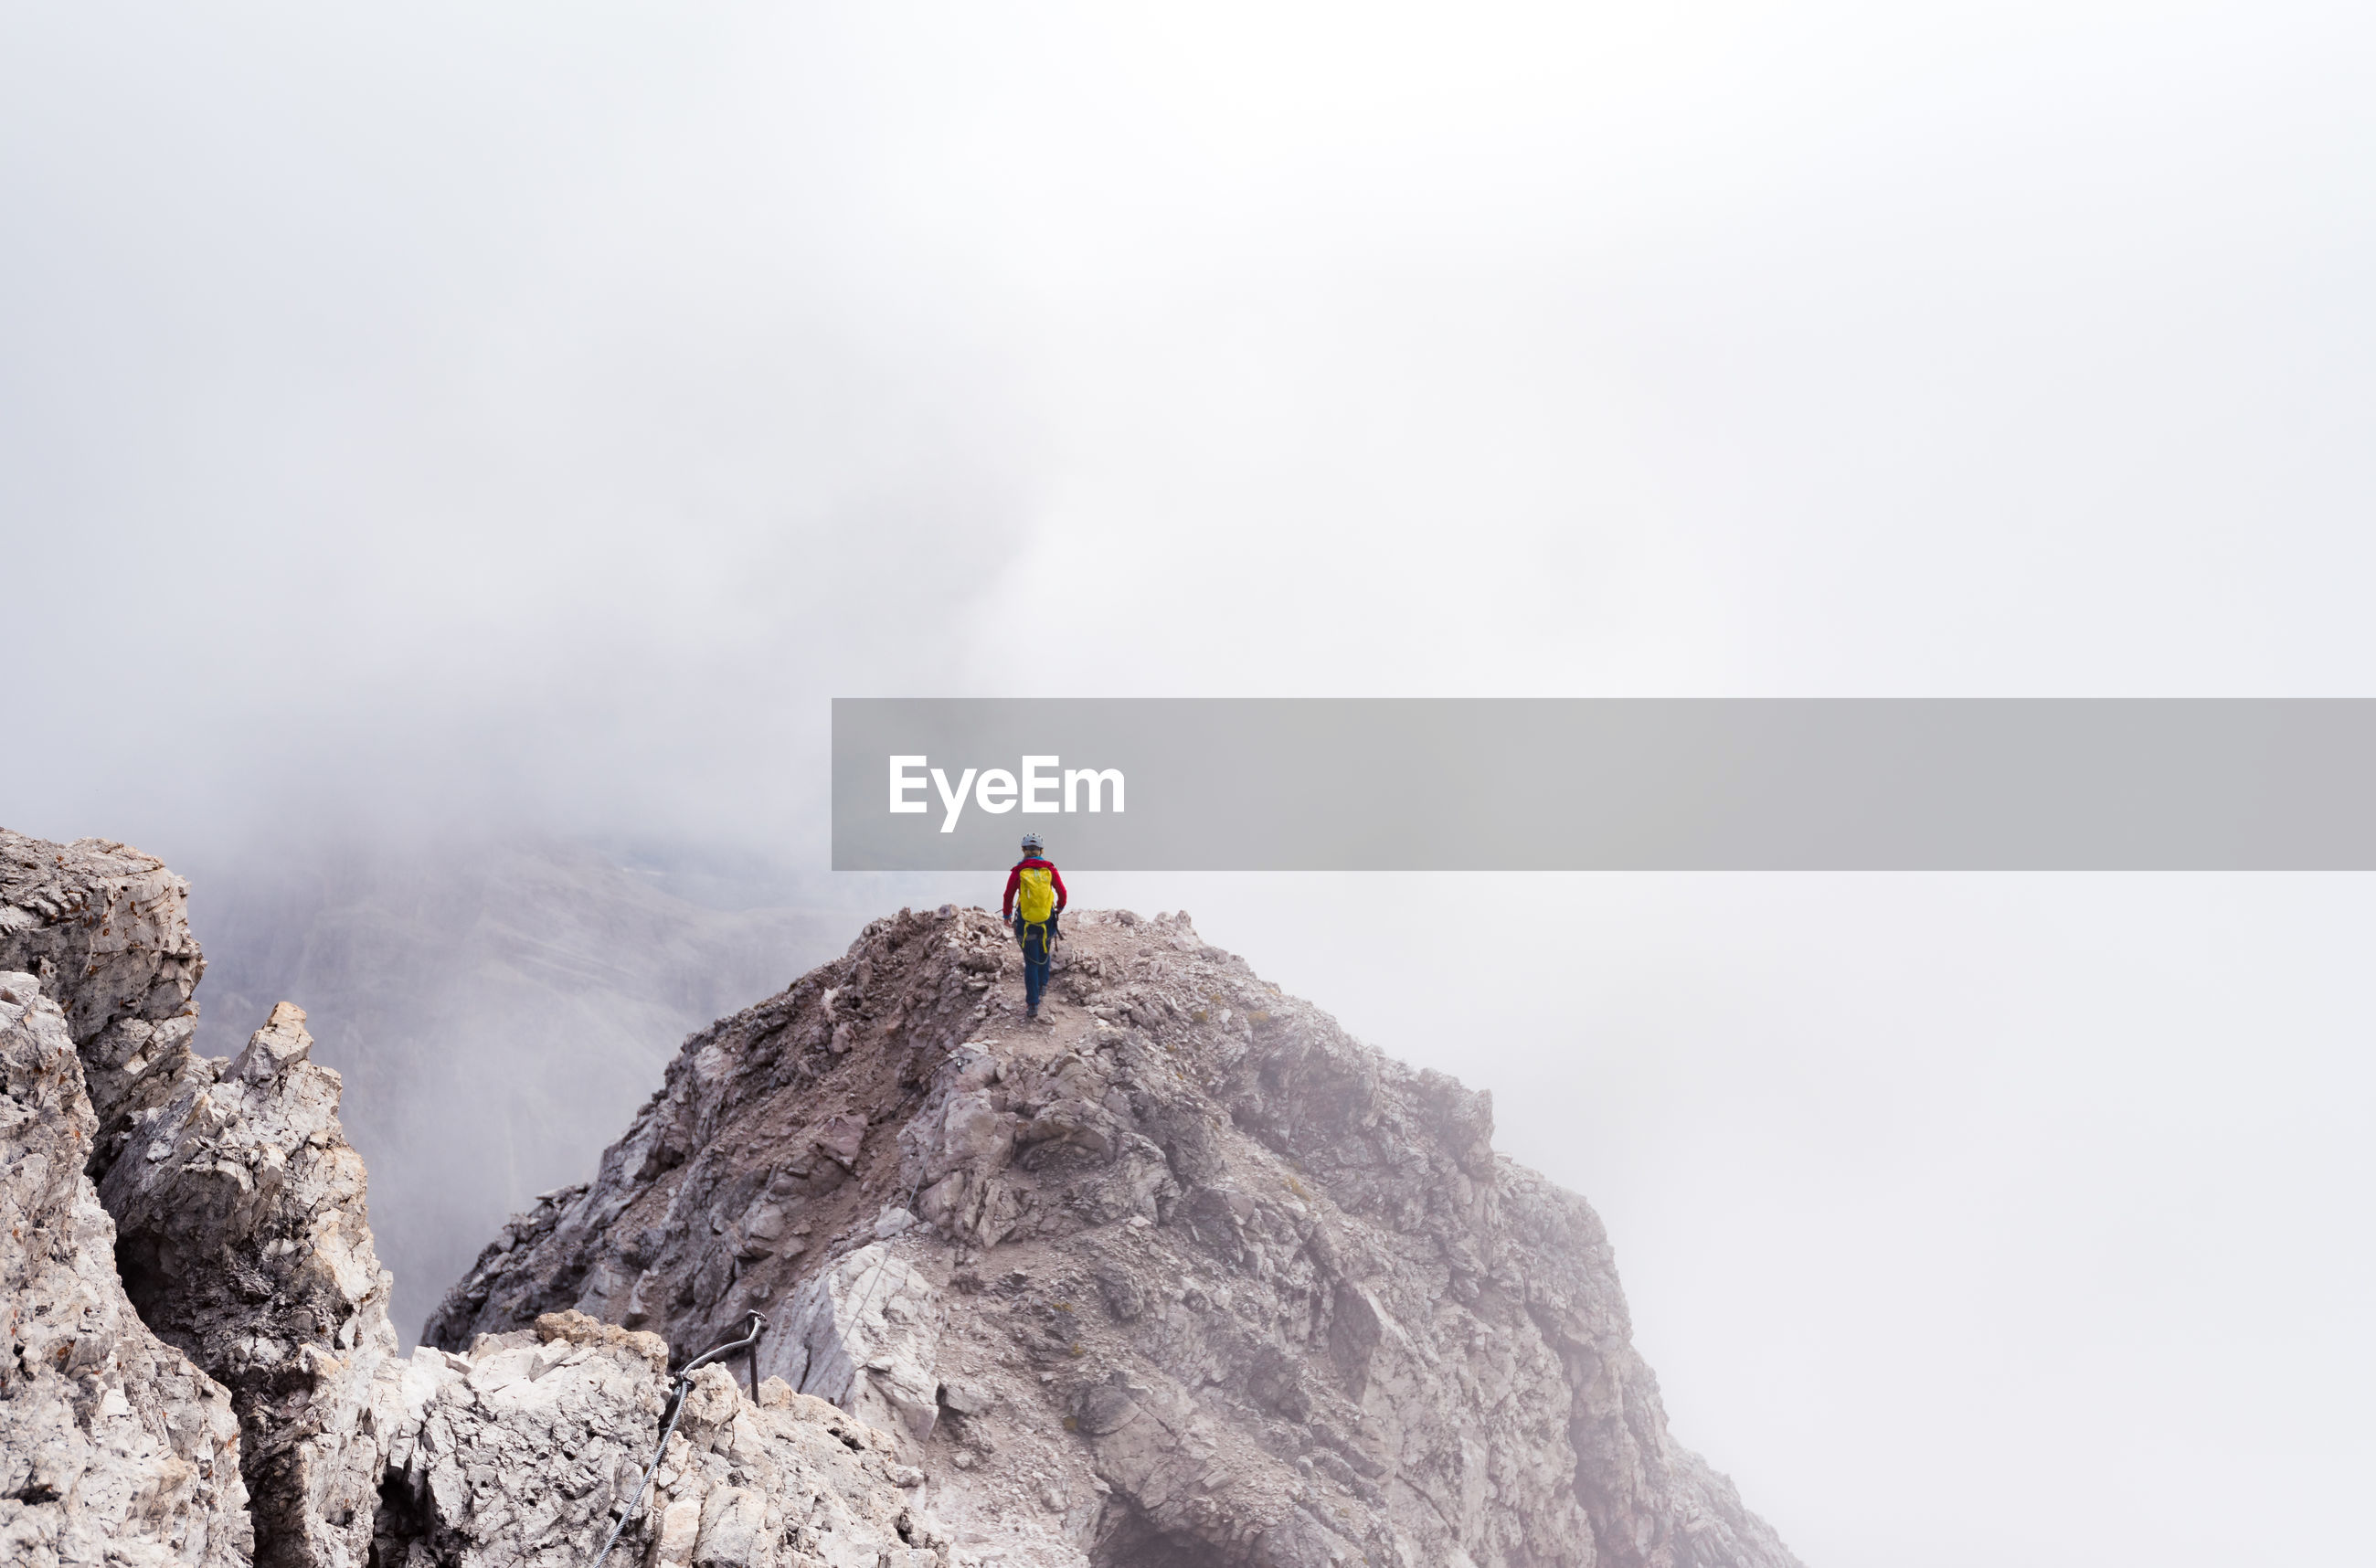 Rear view of person on rock in mountains against sky